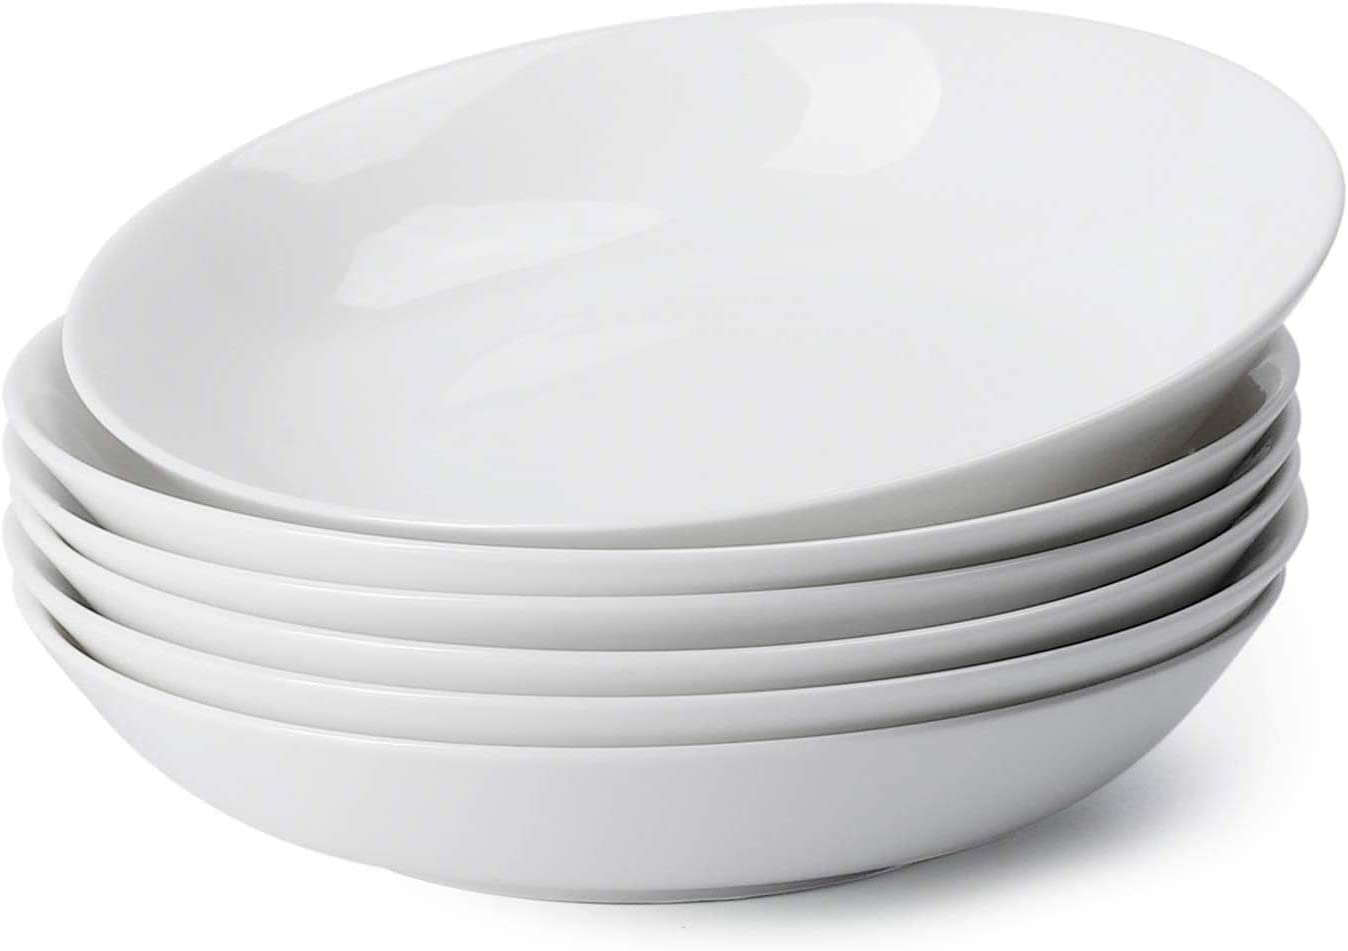 White Lunch Free shipping New Plates SetRestaurant Family Kitchen Party Pasta Milwaukee Mall Use